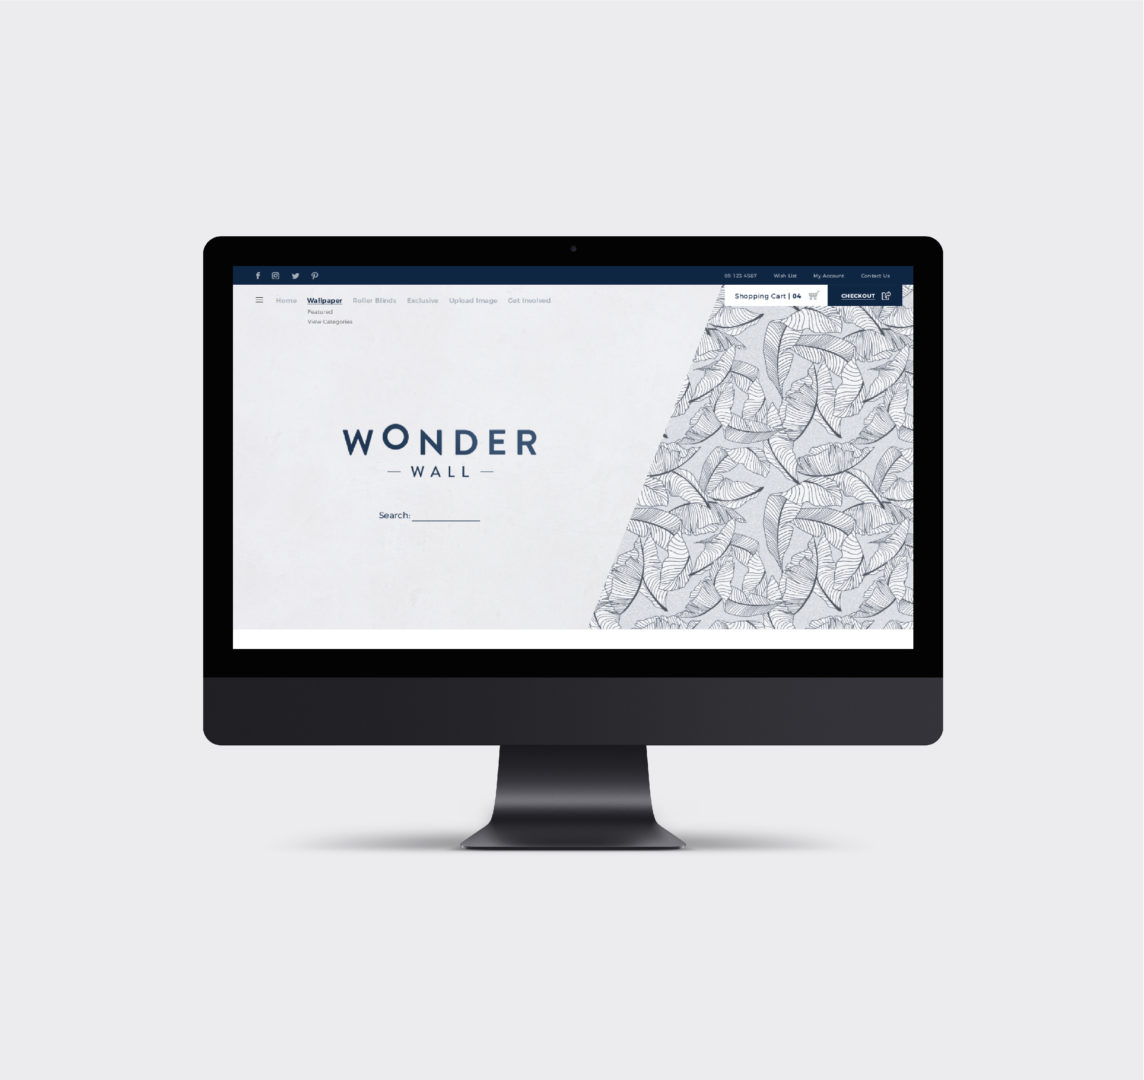 Wonder Wall computer screen website logo landing page